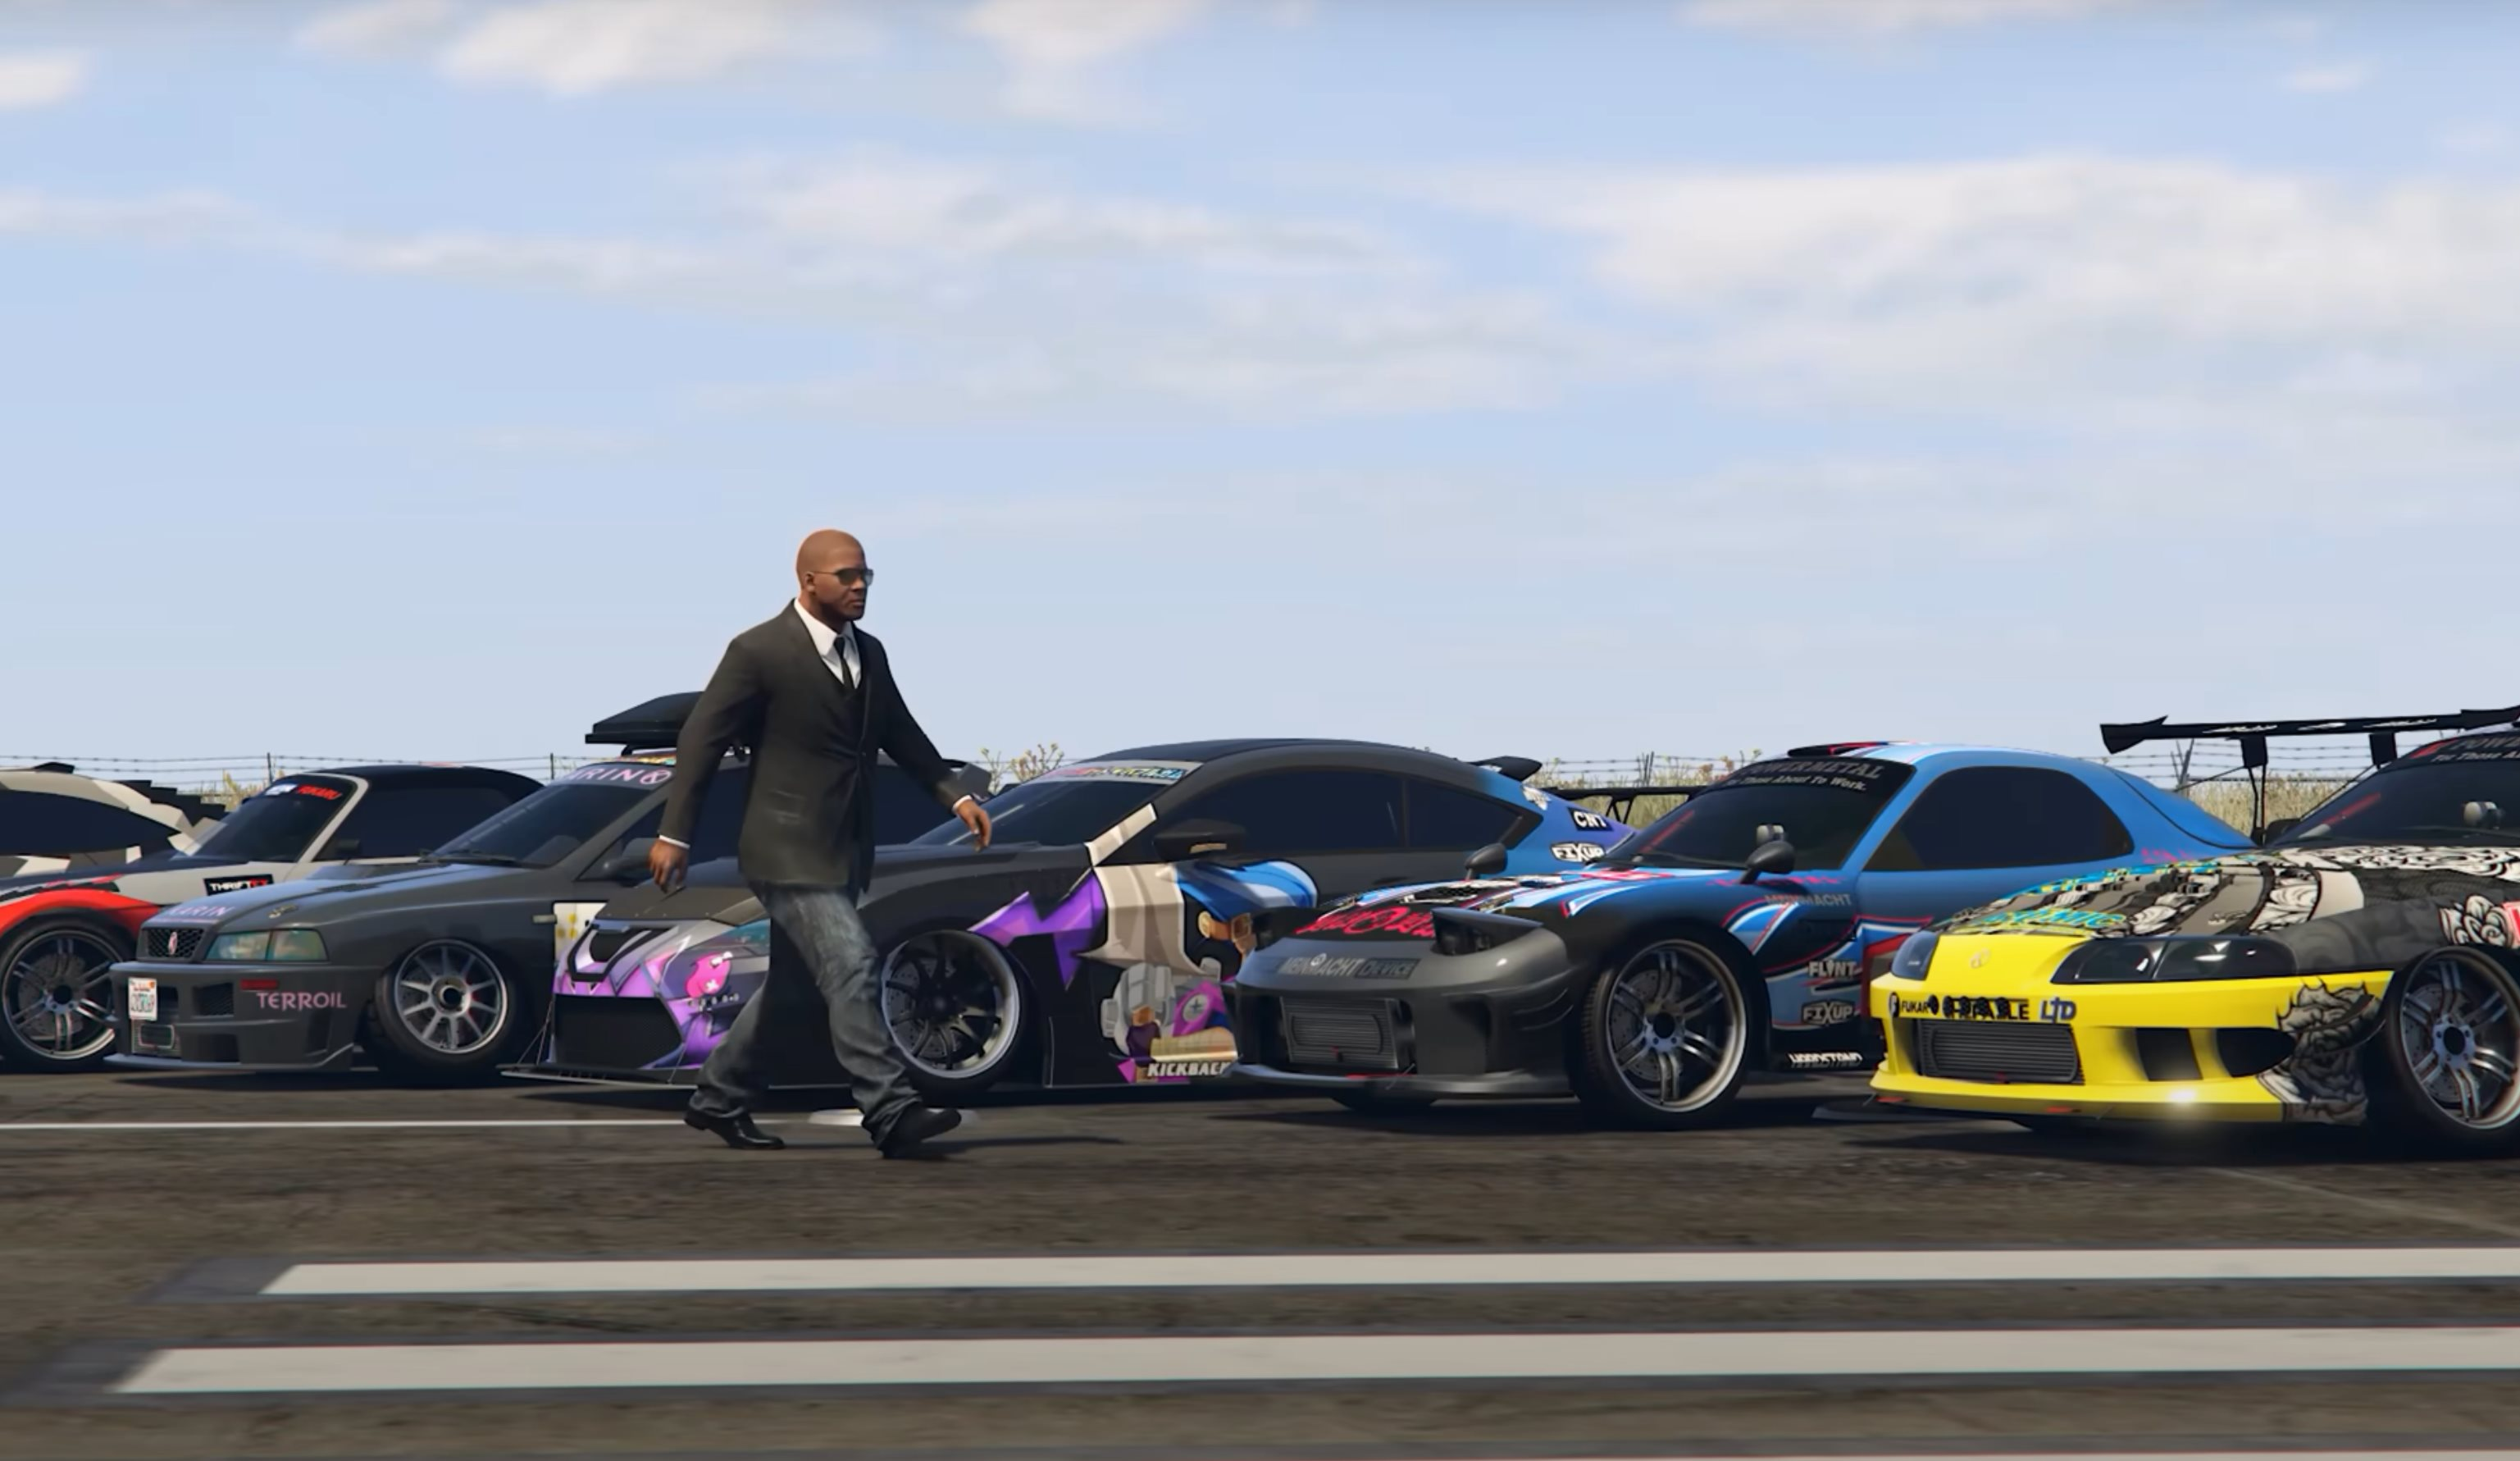 GTA Online Los Santos Tuners Cars Hit the Drag Strip With Surprising Results